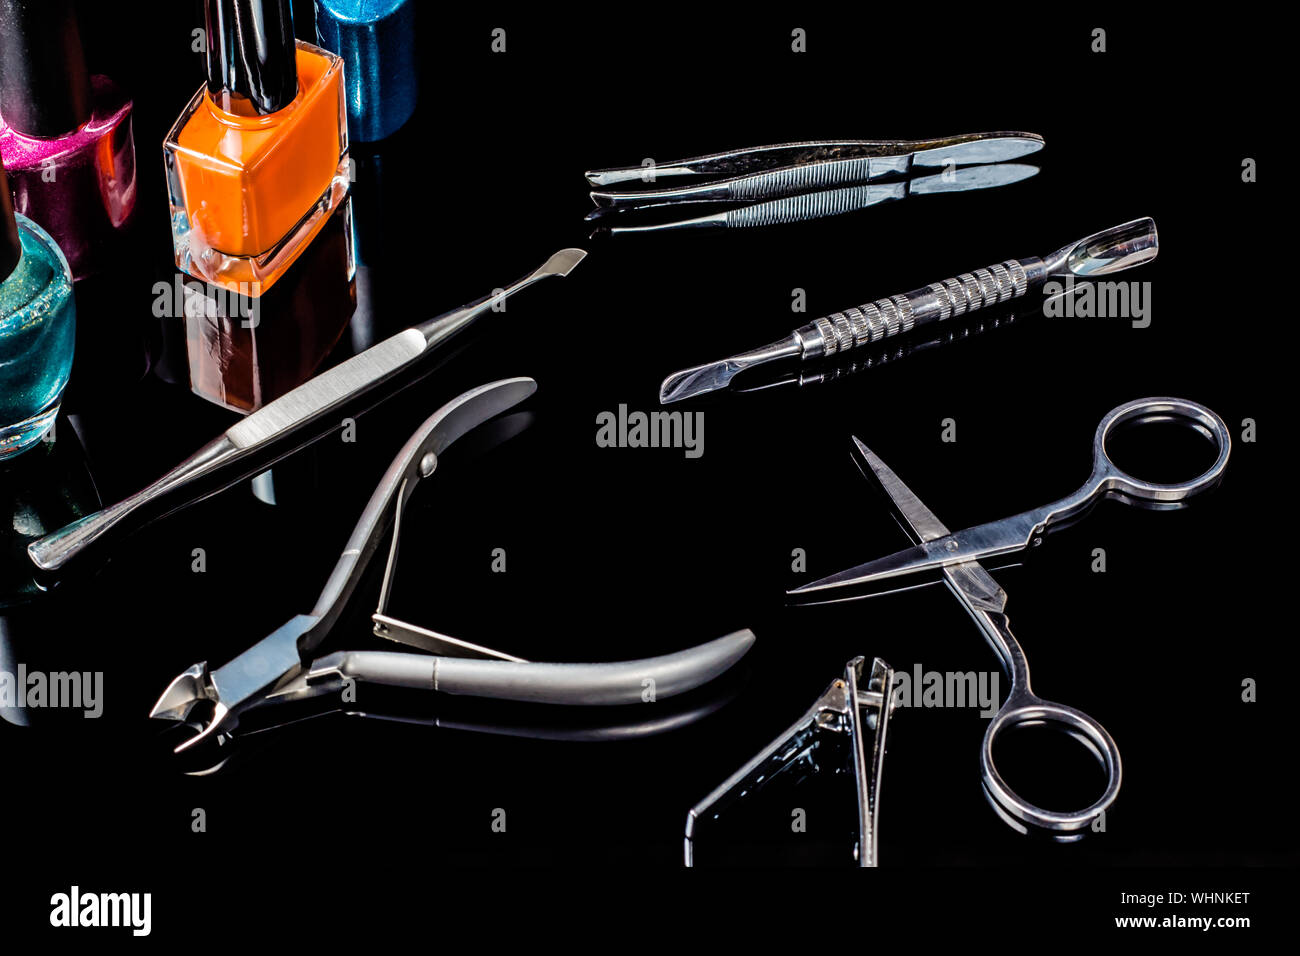 Manicure And Pedicure Tools On Black Background Isolated Equipment For Beauty Shop Cosmetic Salon Or Beauty Parlour Manicure Tools In The Beauty S Stock Photo Alamy